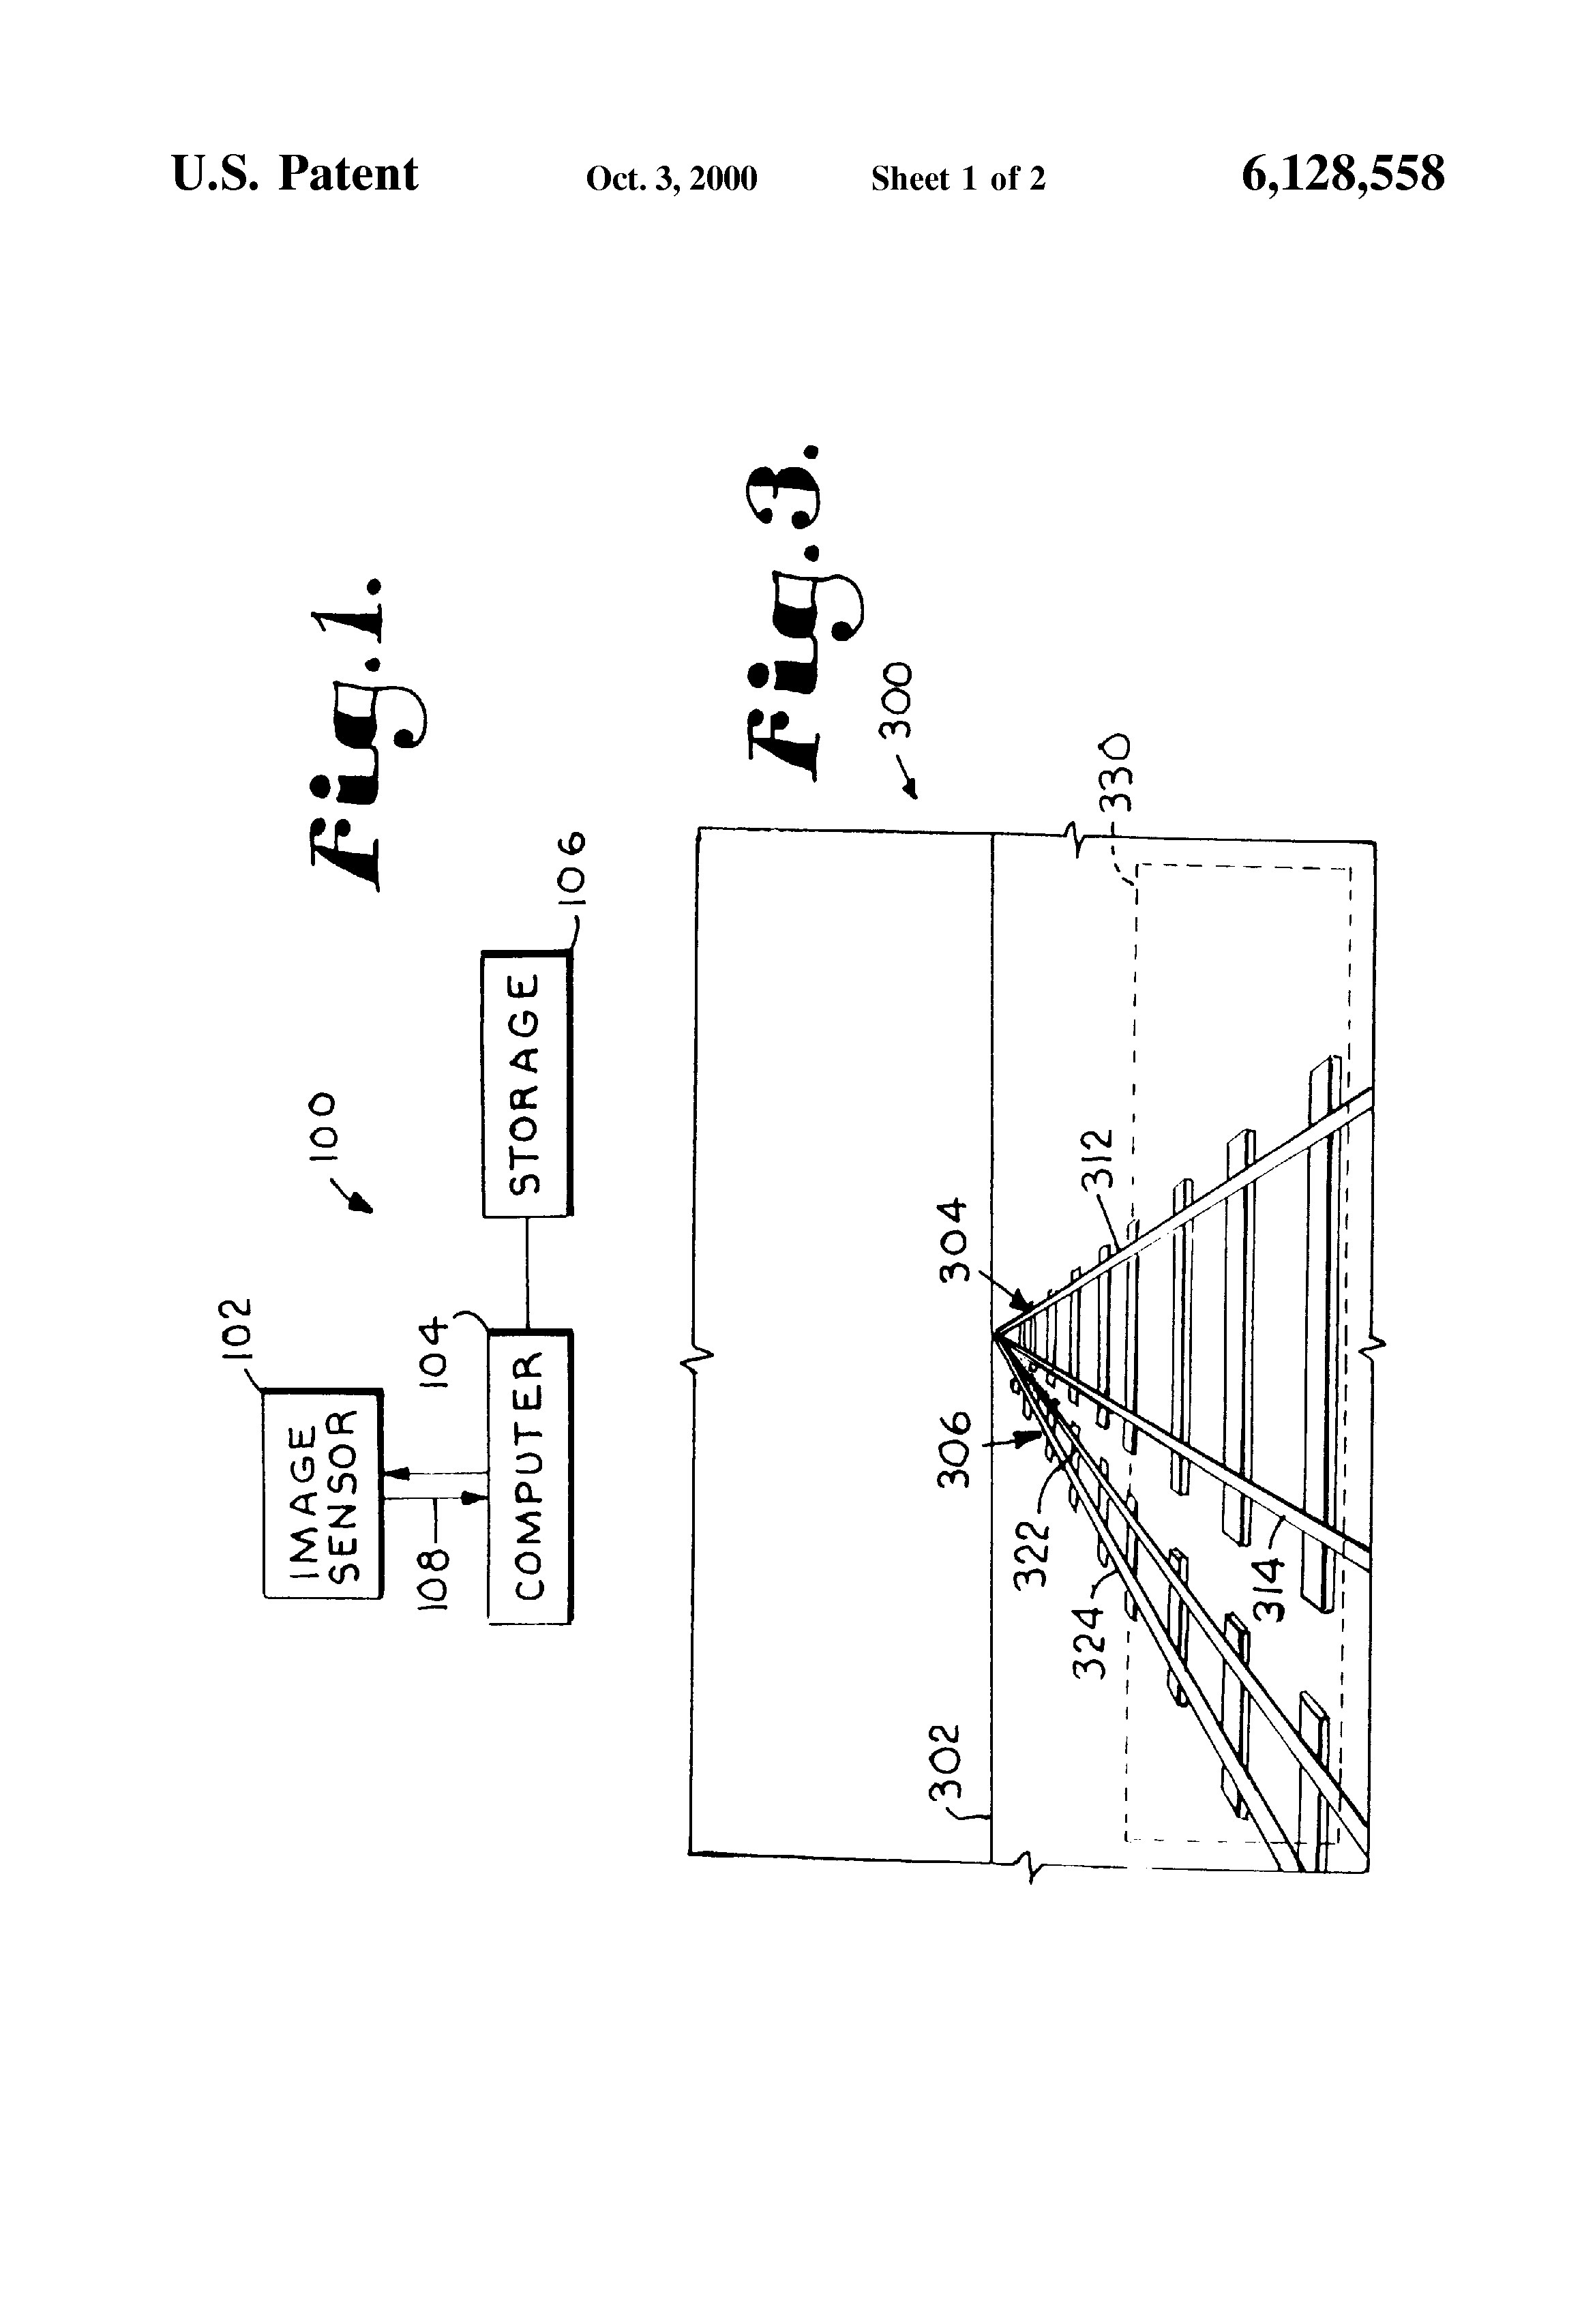 Bresenham Line Drawing Algorithm For Negative Slope : Patent us method and apparatus for using machine